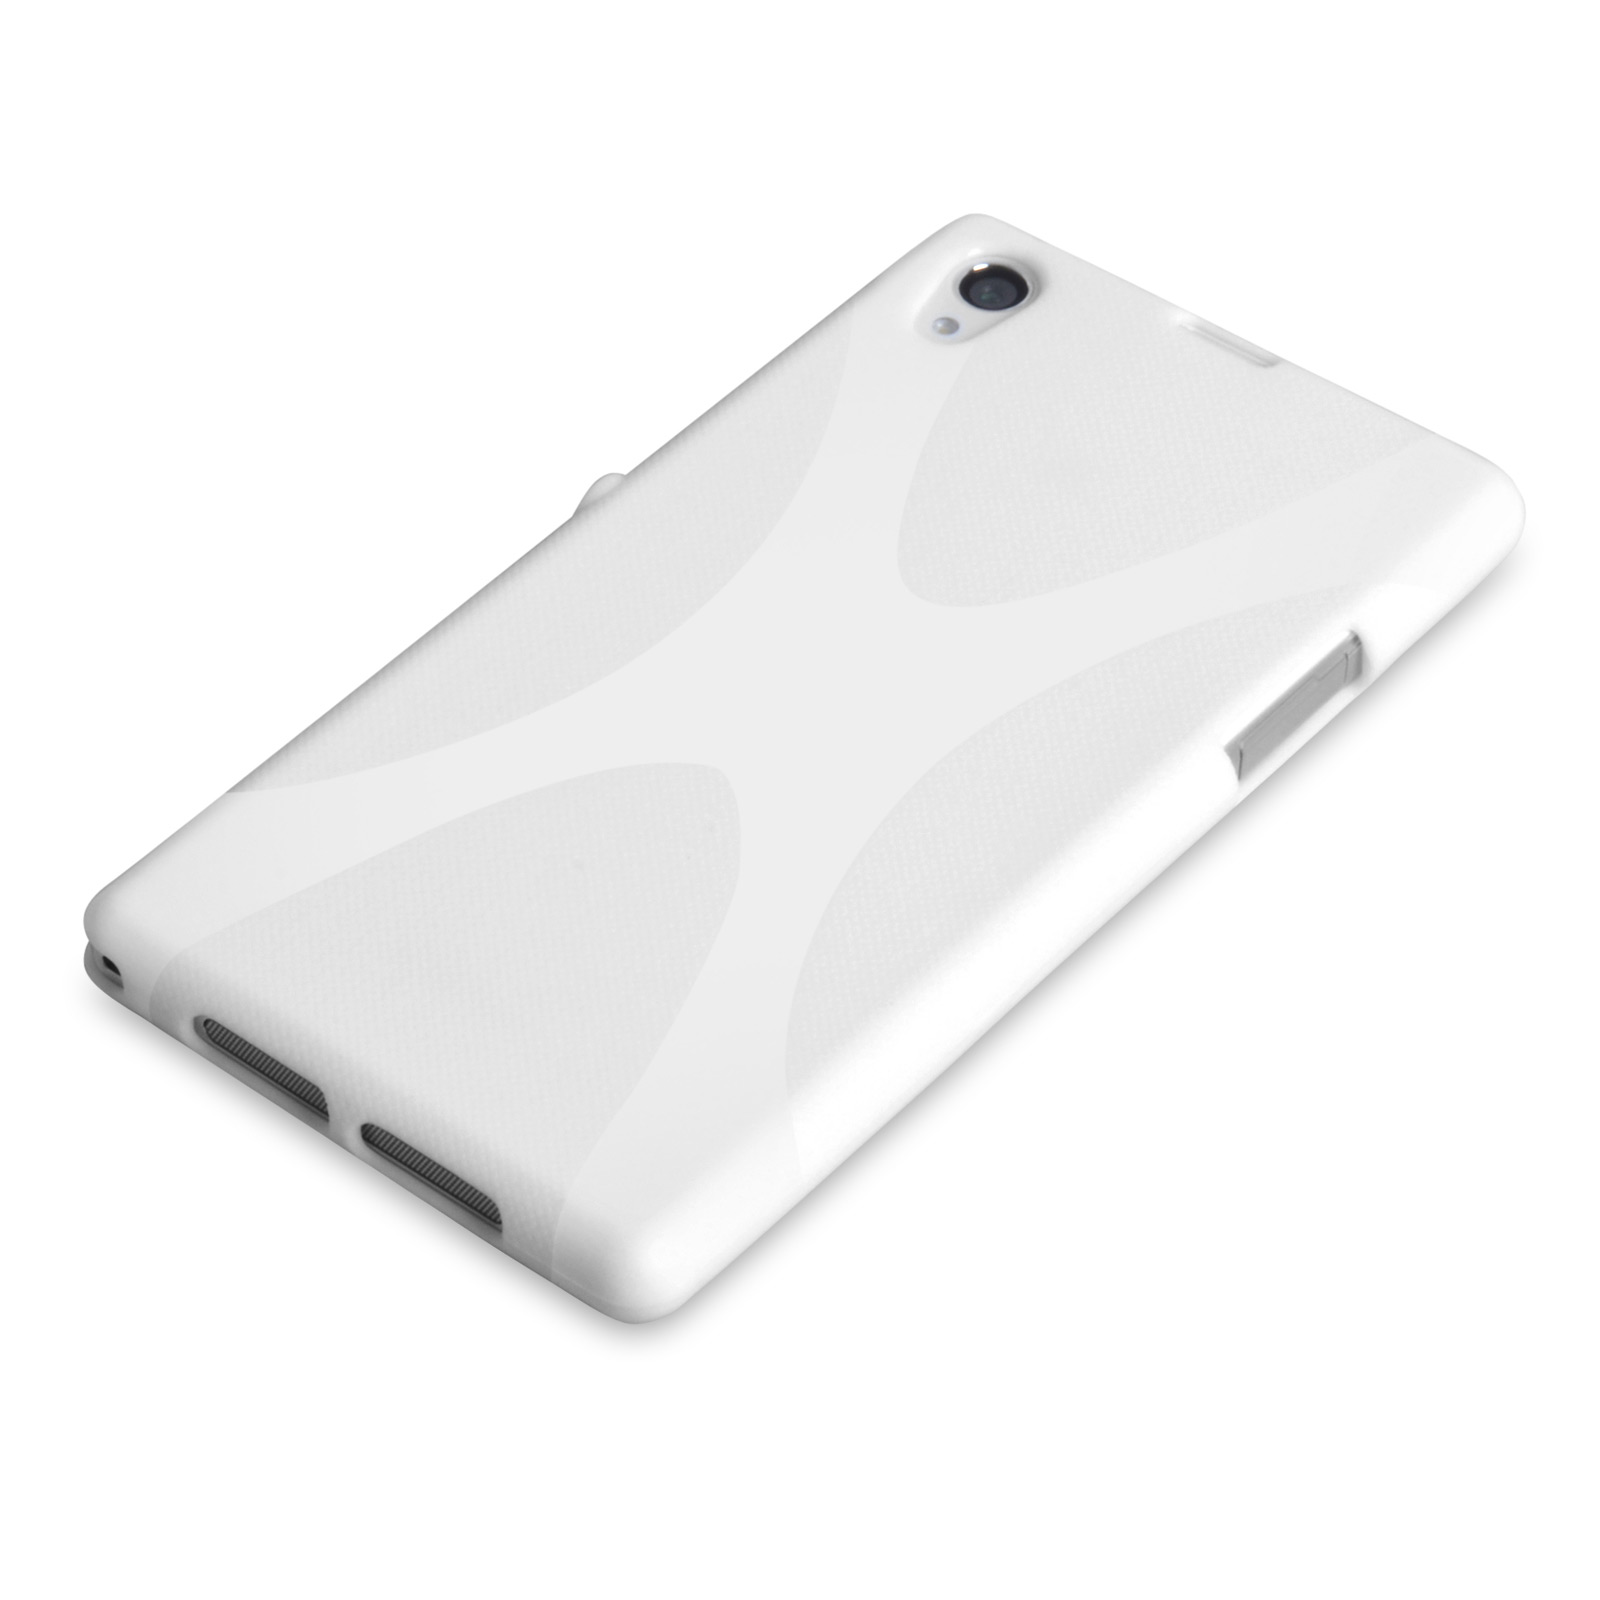 YouSave Accessories Sony Xperia Z2 Silicone Gel X-Line Case - White